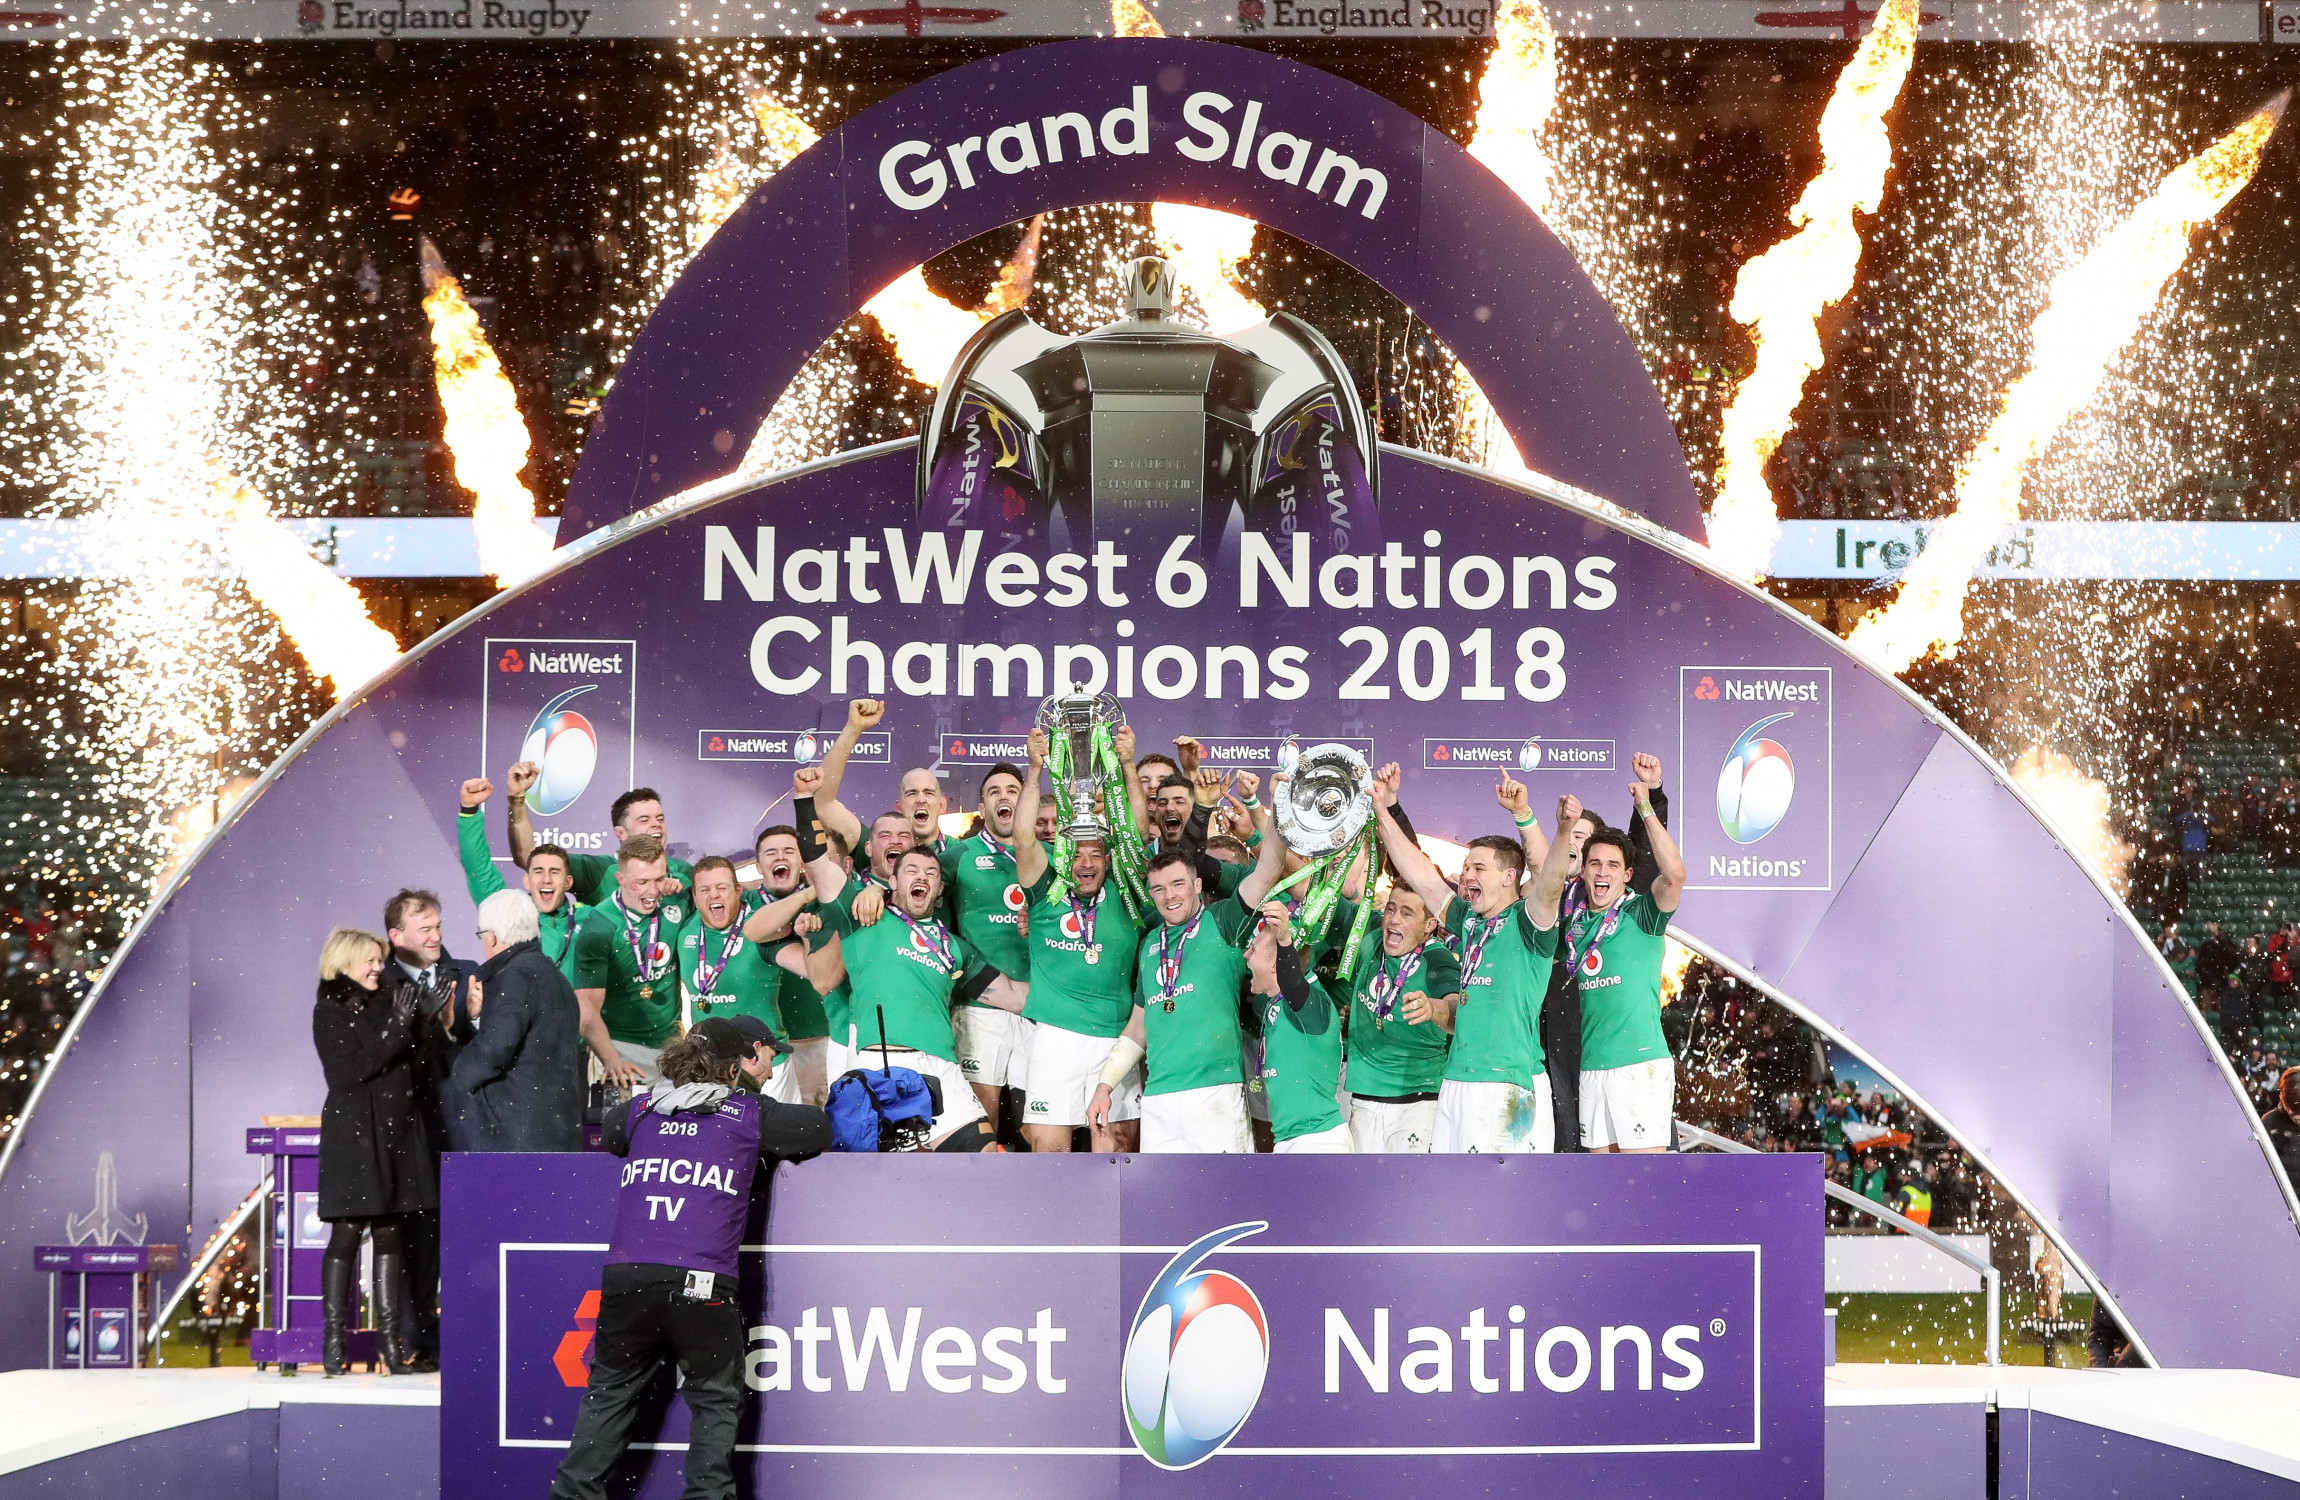 Aer Lingus had a brilliant surprise for Irish fans travelling to Twickenham